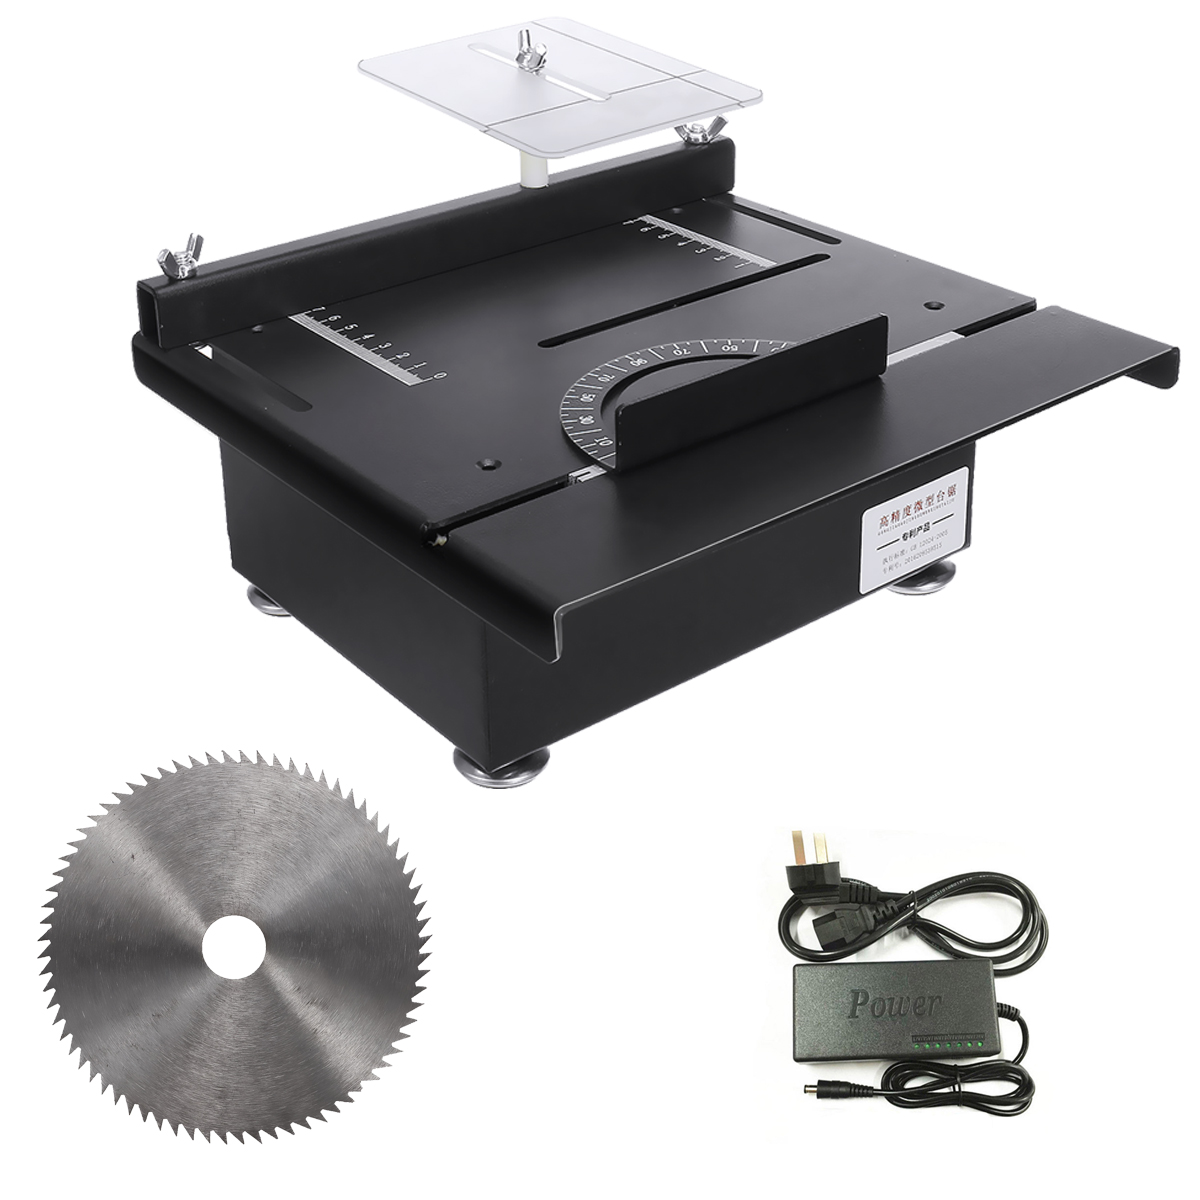 Mini Table Saw 100W Handmade Woodworking Bench Saw Multifunction Cutter DIY Crafts Cutting Tool Machine with Circular Saw Blade